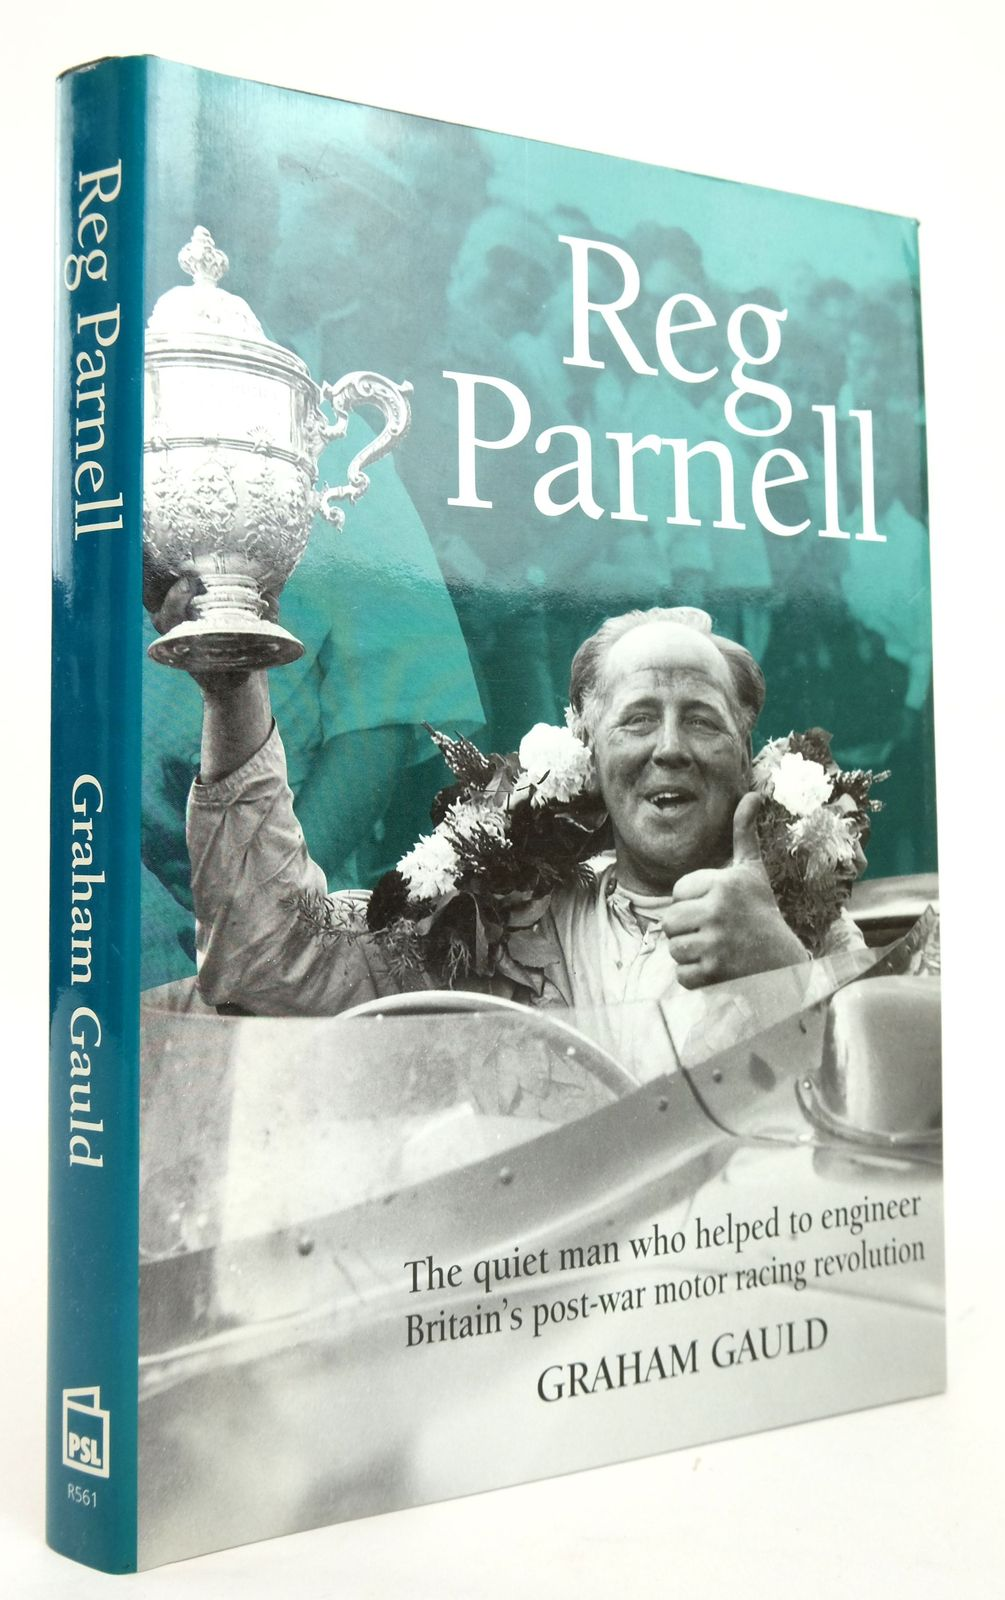 Photo of REG PARNELL written by Gauld, Graham published by Patrick Stephens Limited (STOCK CODE: 1820217)  for sale by Stella & Rose's Books